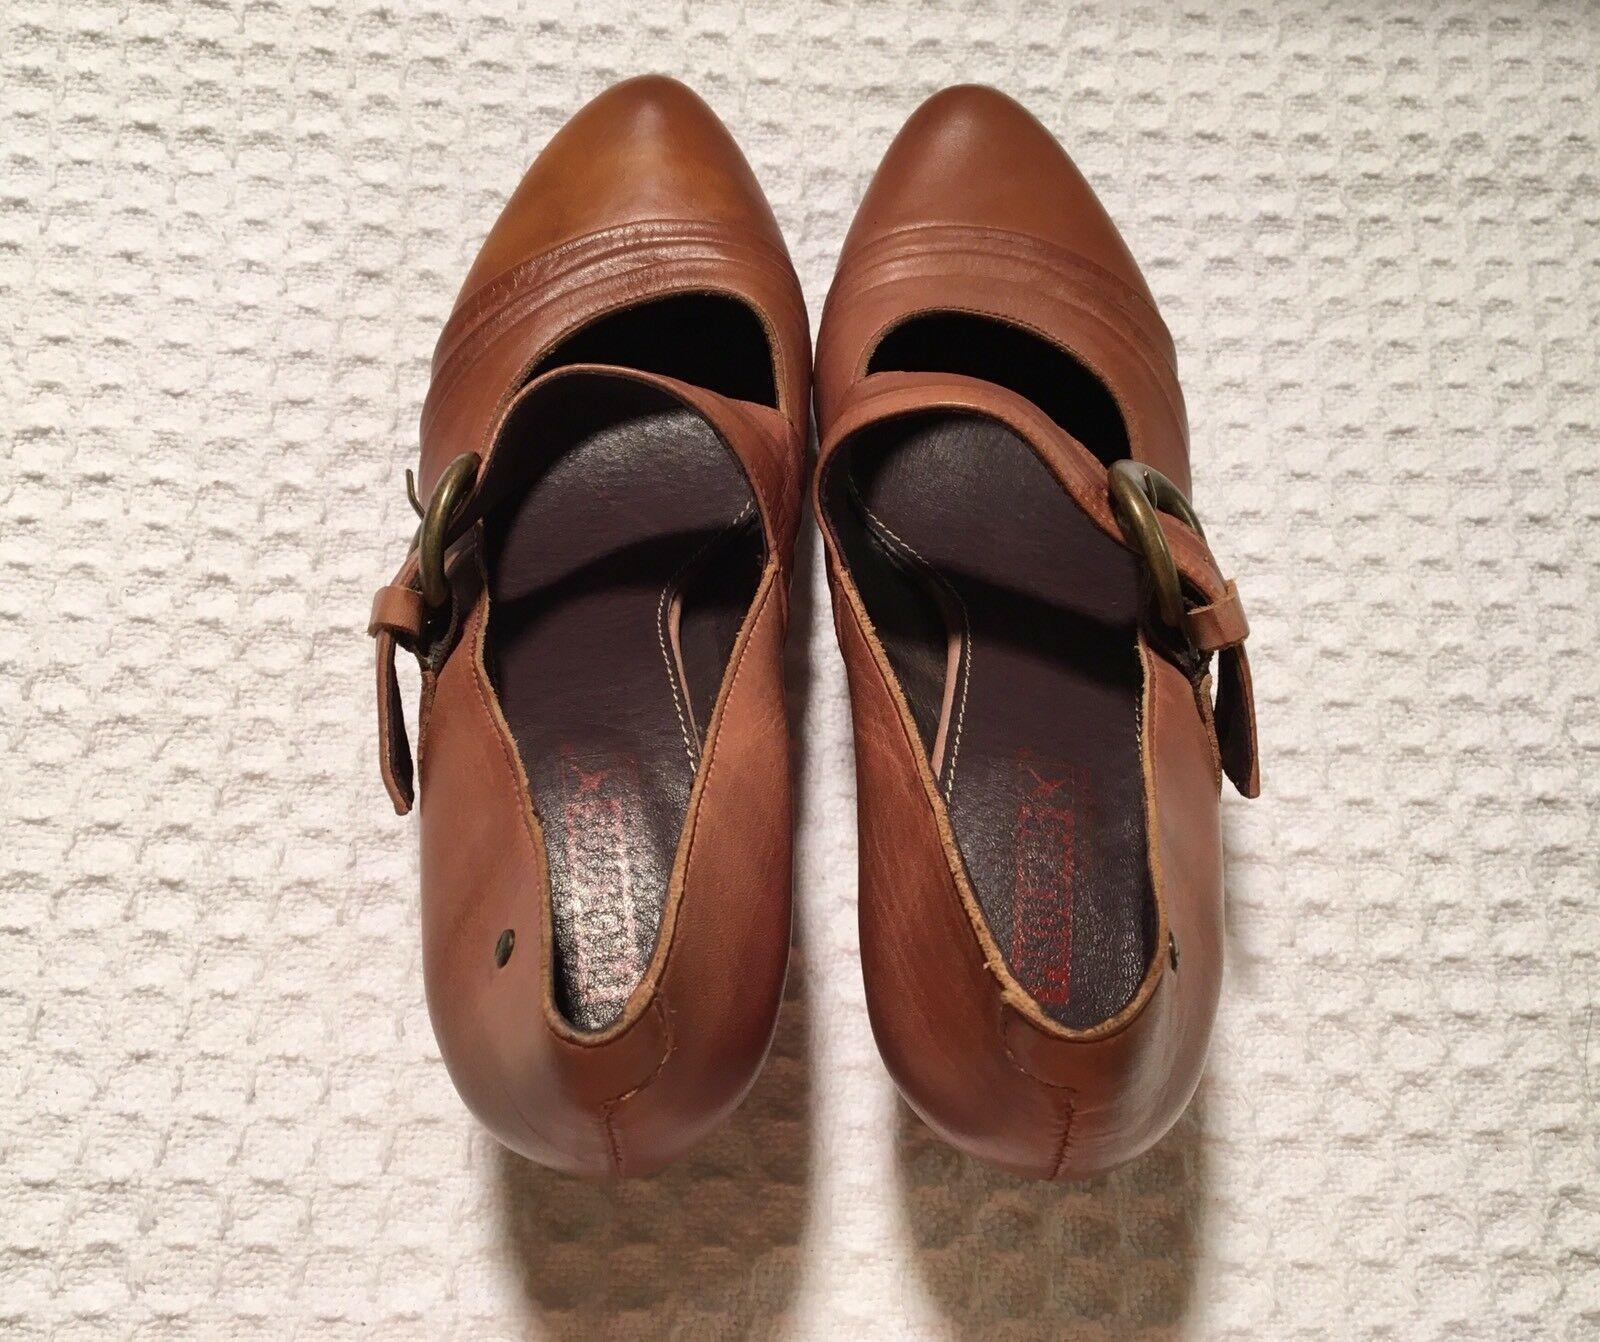 PIKOLINOS Ginebra Avellana Pleated Leather Leather Leather Mary Janes Wedge Heels 42   11.5 12 a5b52d